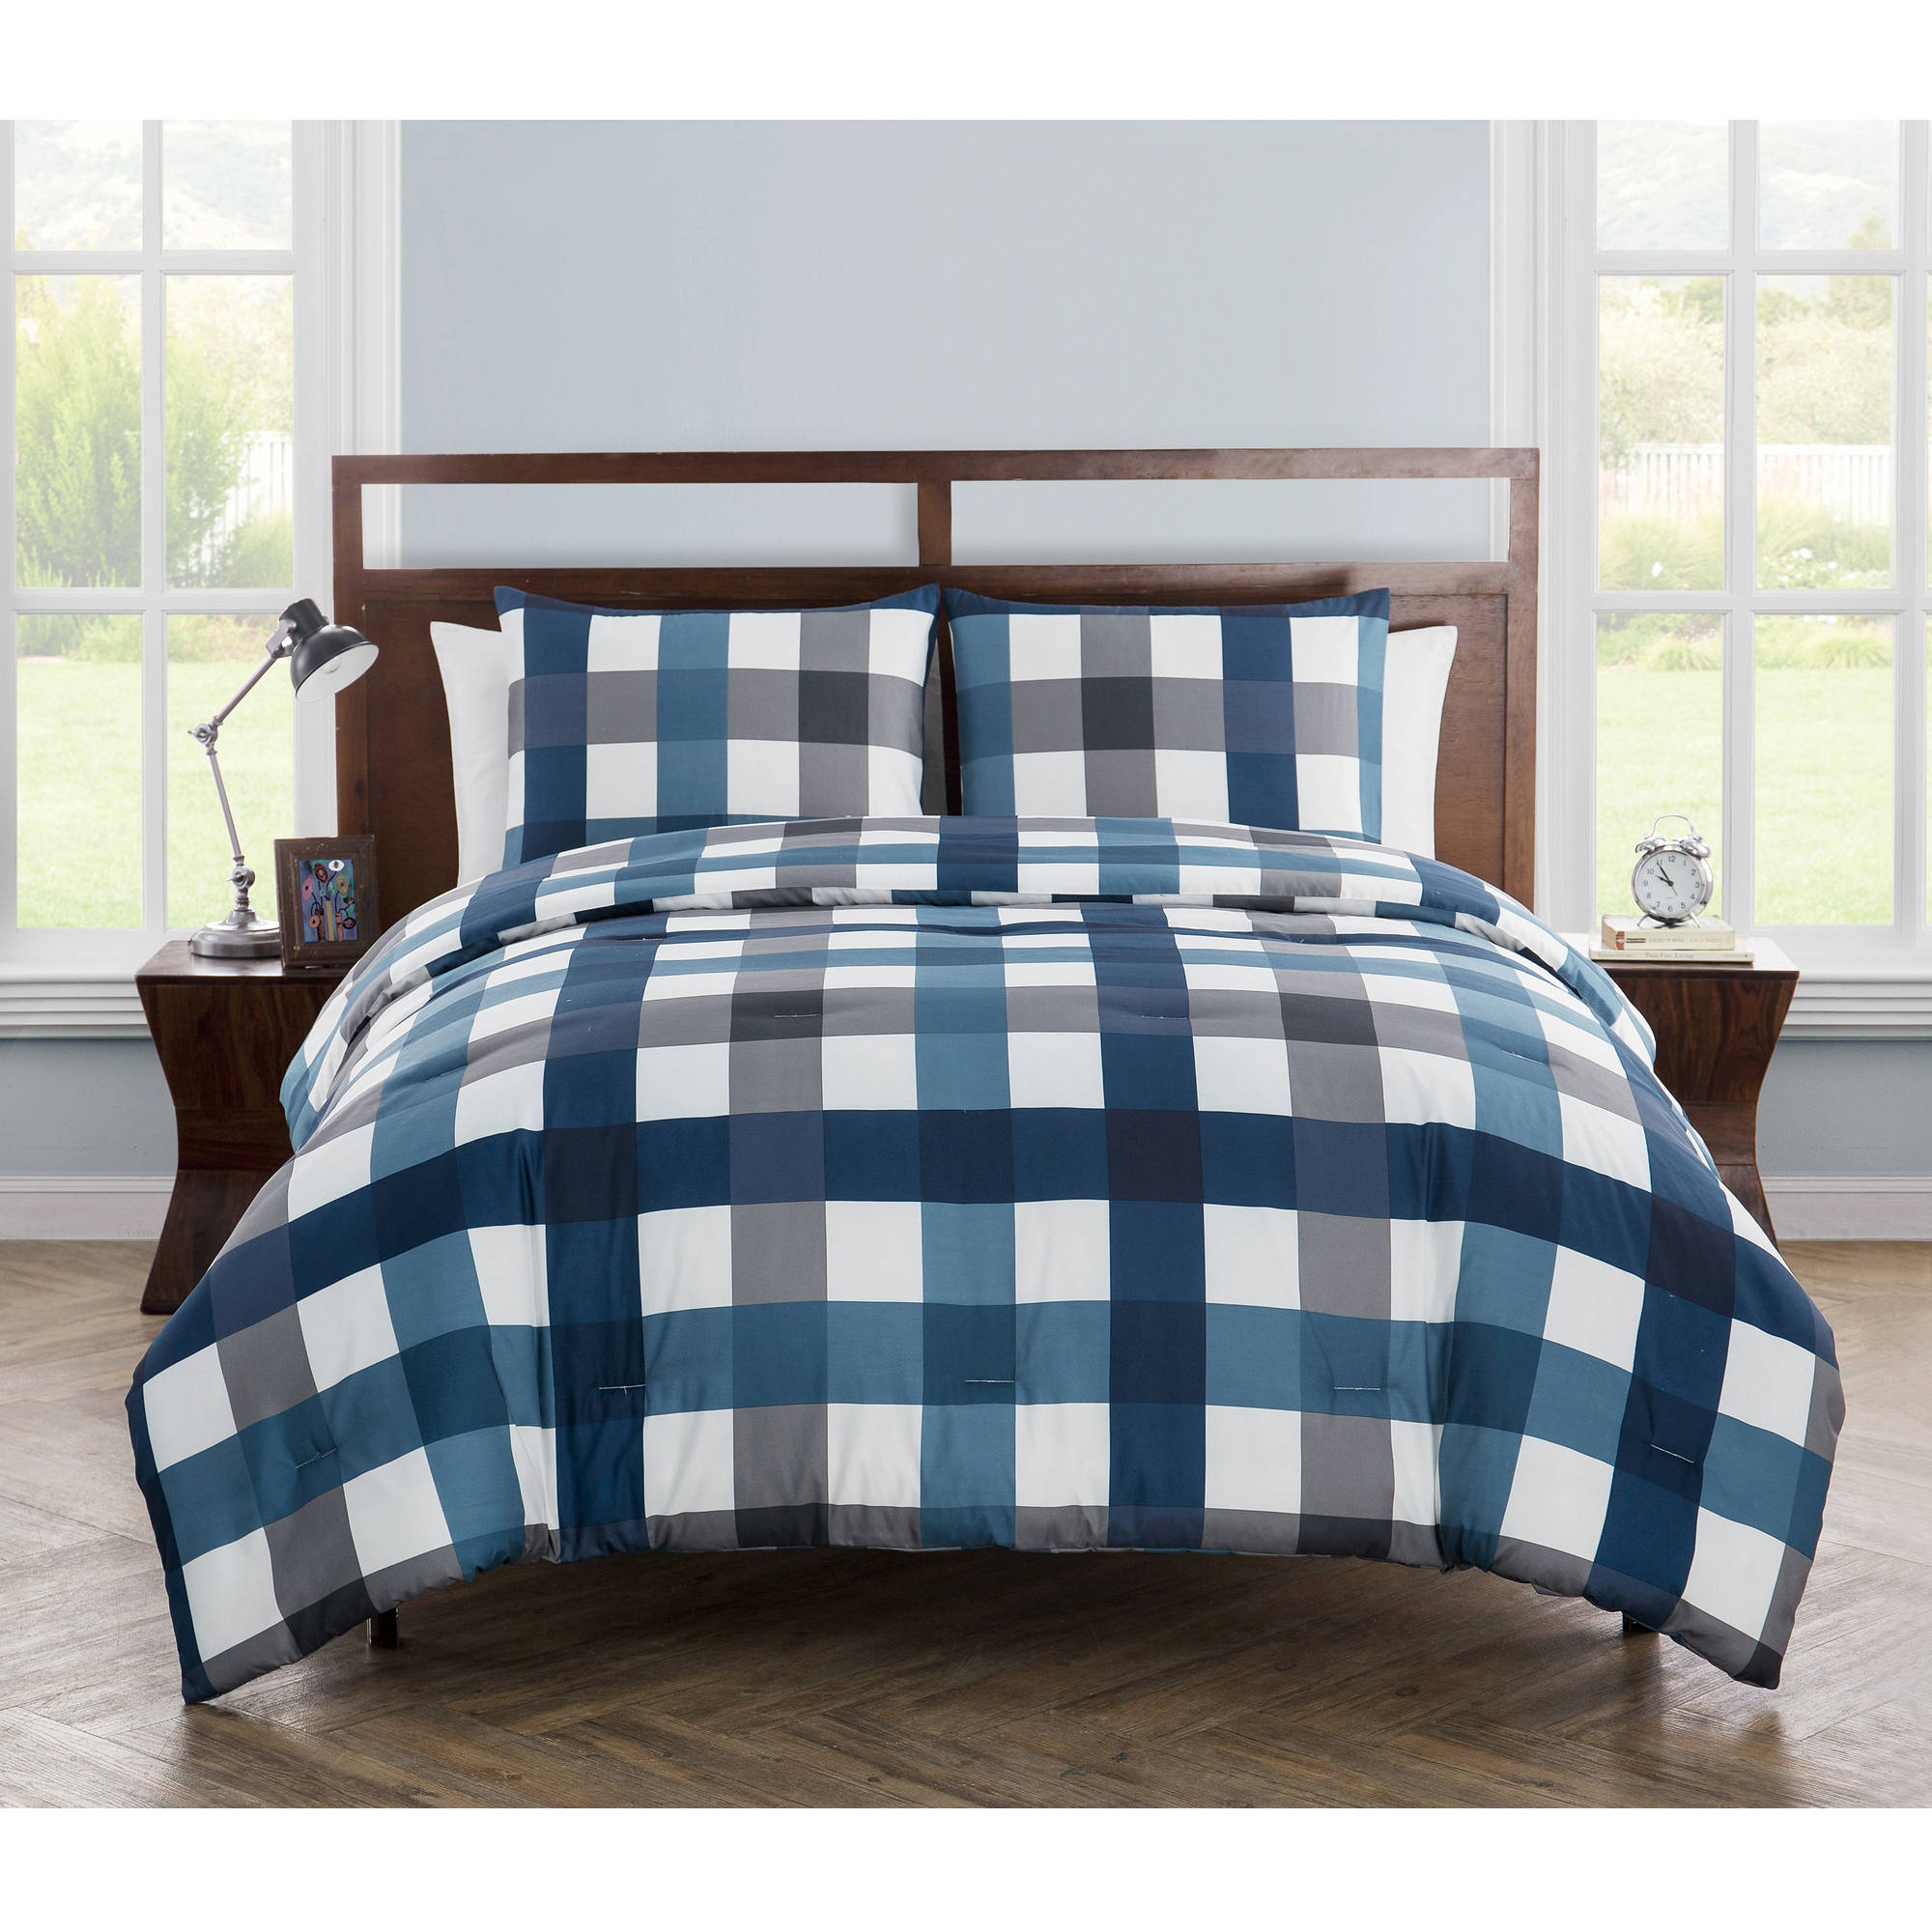 VCNY Home Bradley Gingham Printed Bedding Comforter Set, Shams Included